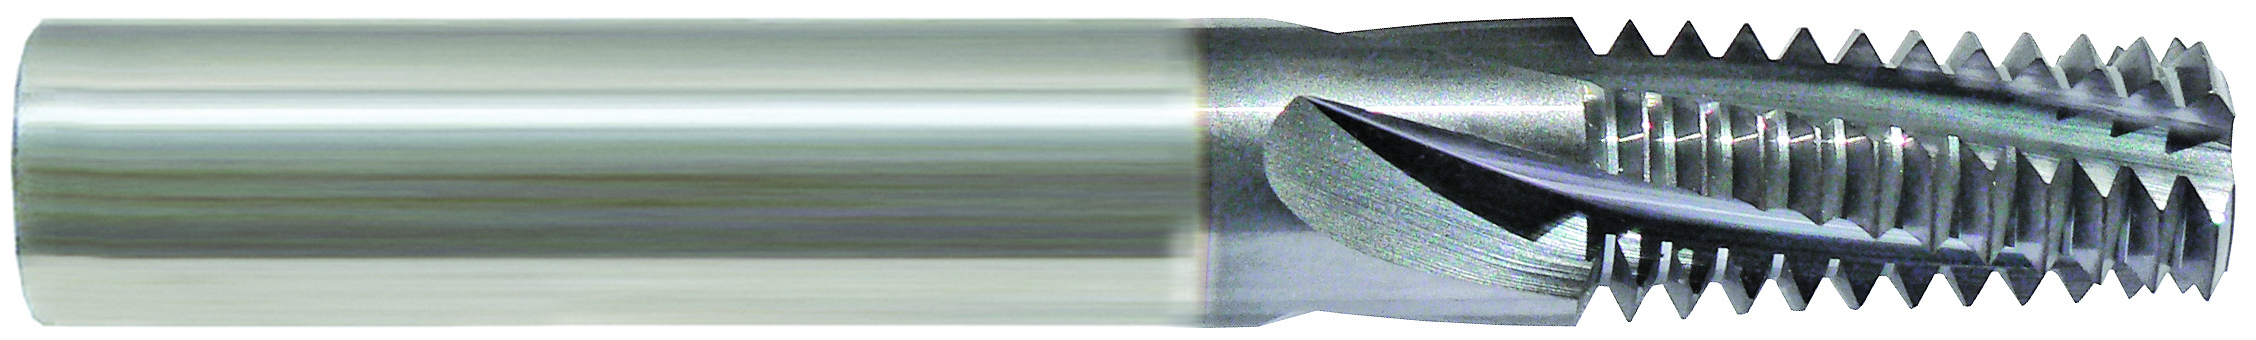 M8-1.25 MC SOLID CARBIDE THREAD MILL